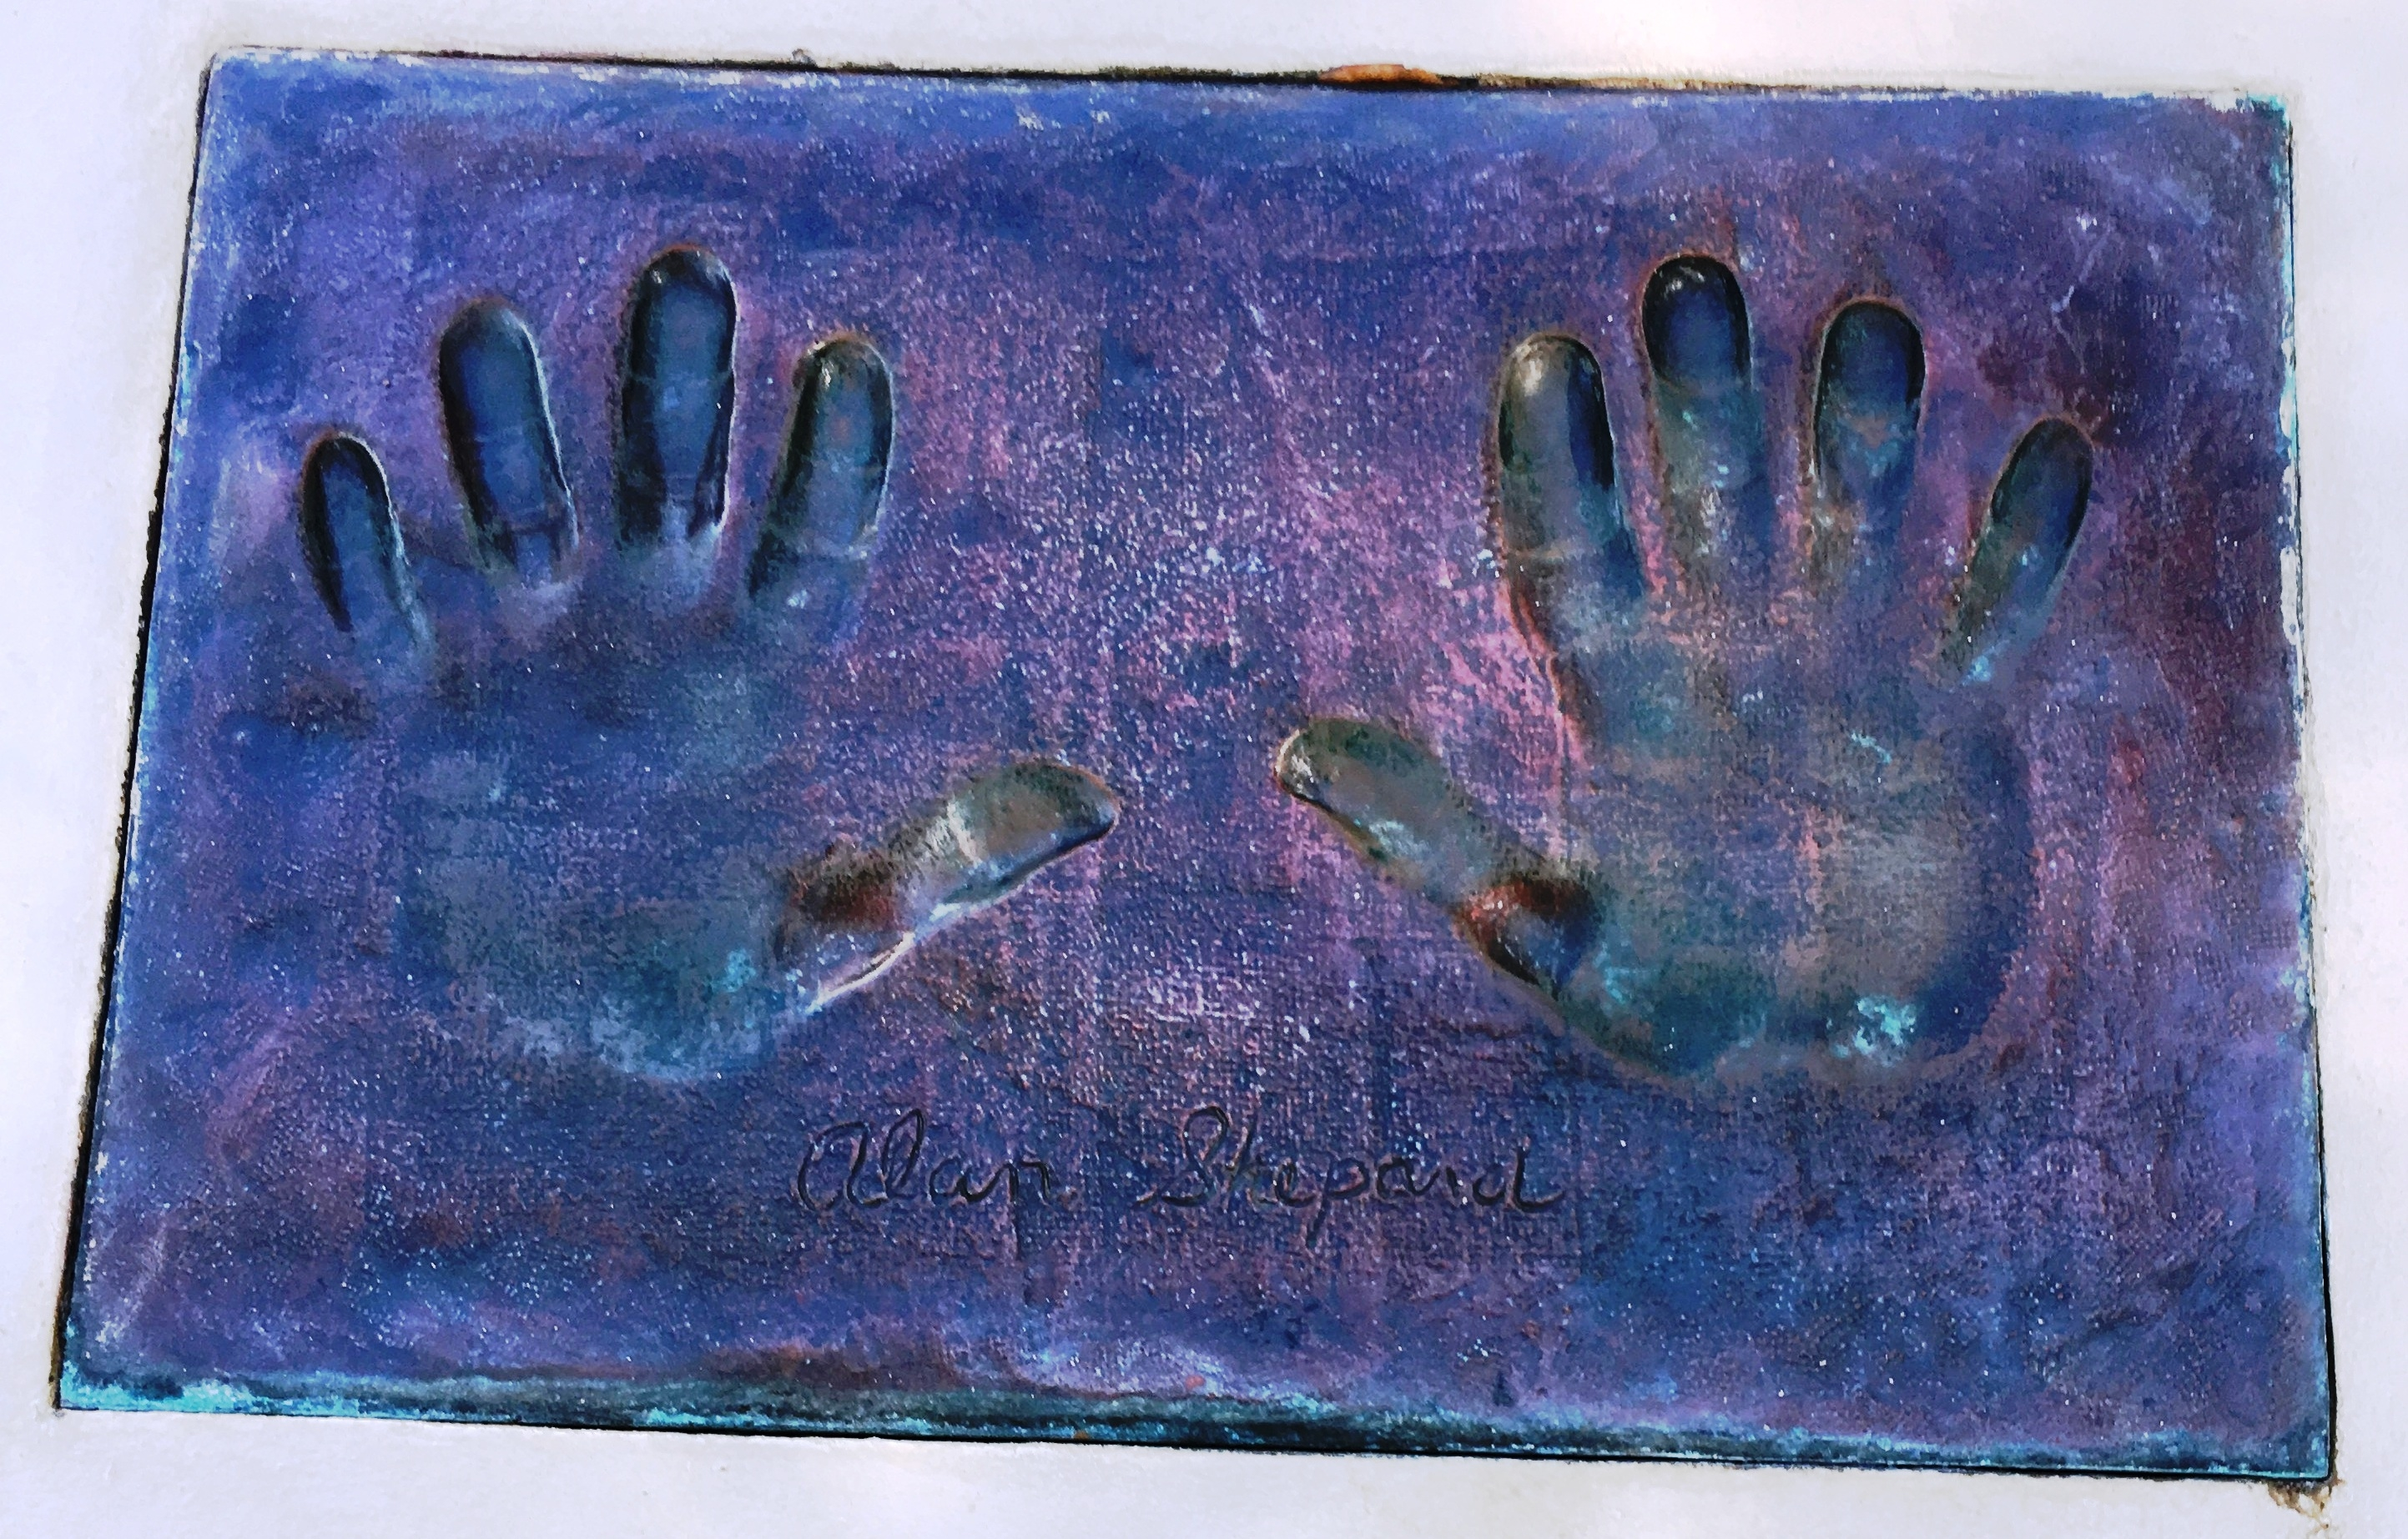 Alan B. Shepard Handprints marker